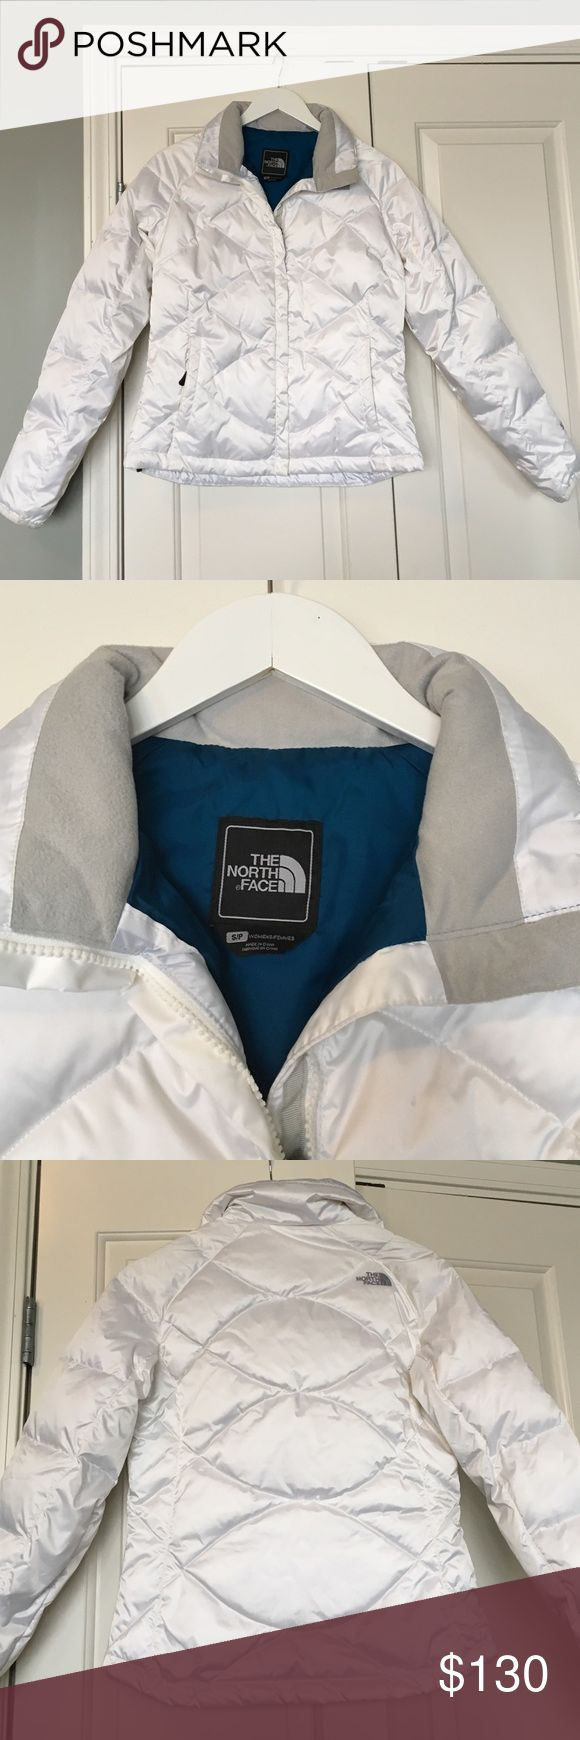 North Face winter coat White North Face coat with blue interior. The pockets are lined with the gray material seen on the collar and are very warm! North Face Jackets & Coats